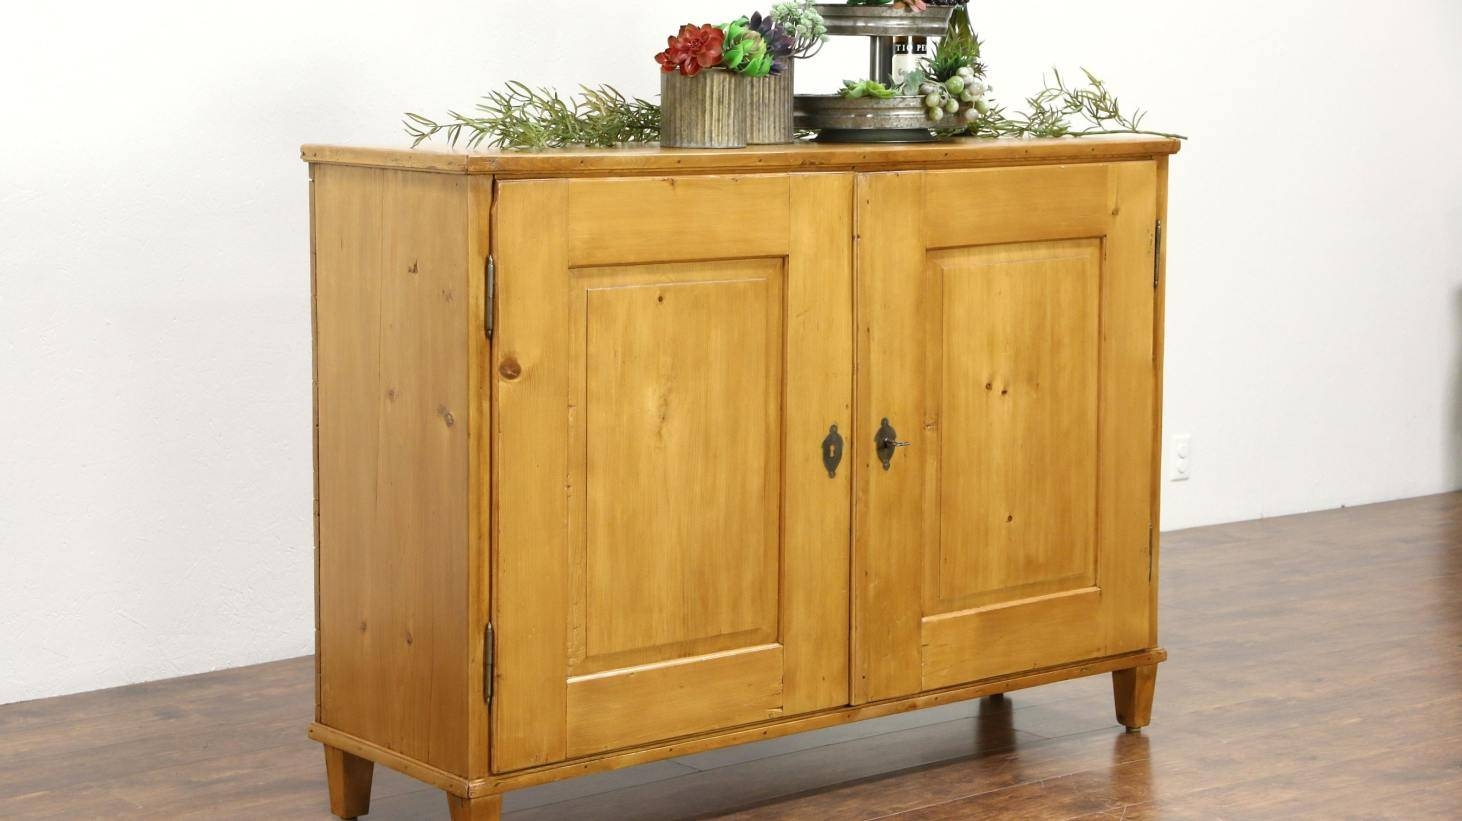 Inspiration about Sideboard : Bali Style Rustic Console Cabinet From Gadogado Com Within Most Current Singapore Sideboards And Buffets (#6 of 15)